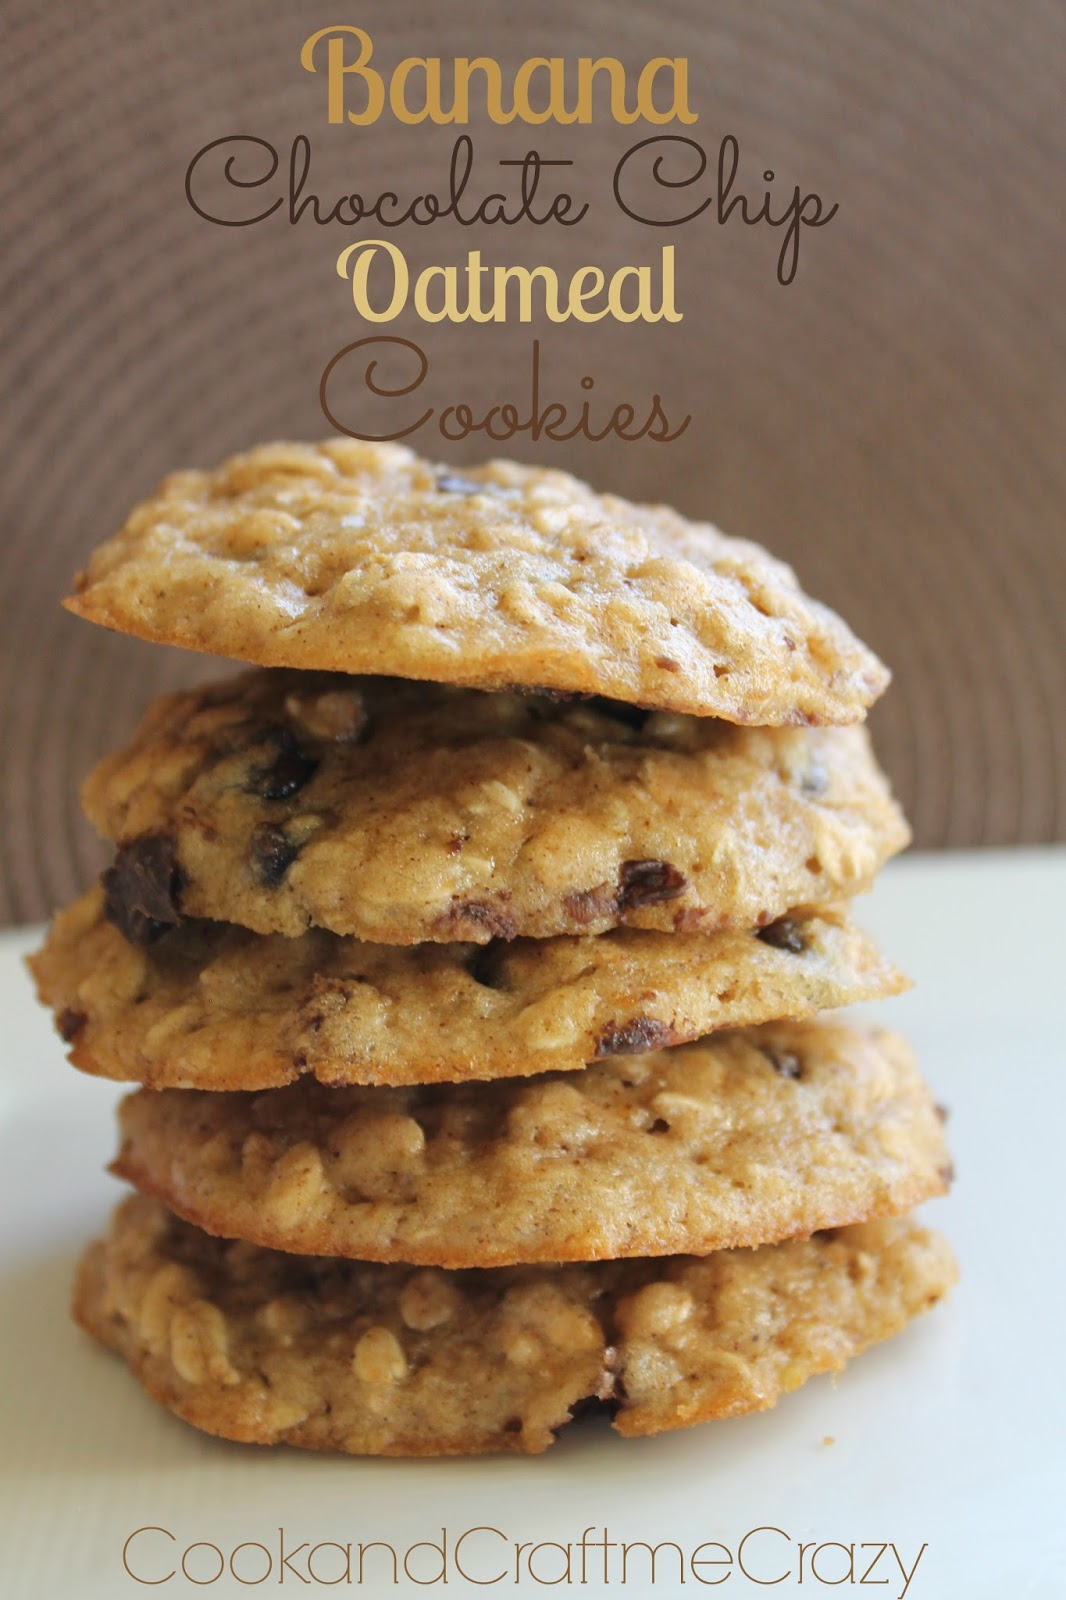 Cook and Craft Me Crazy: Banana Chocolate Chip Oatmeal Cookies